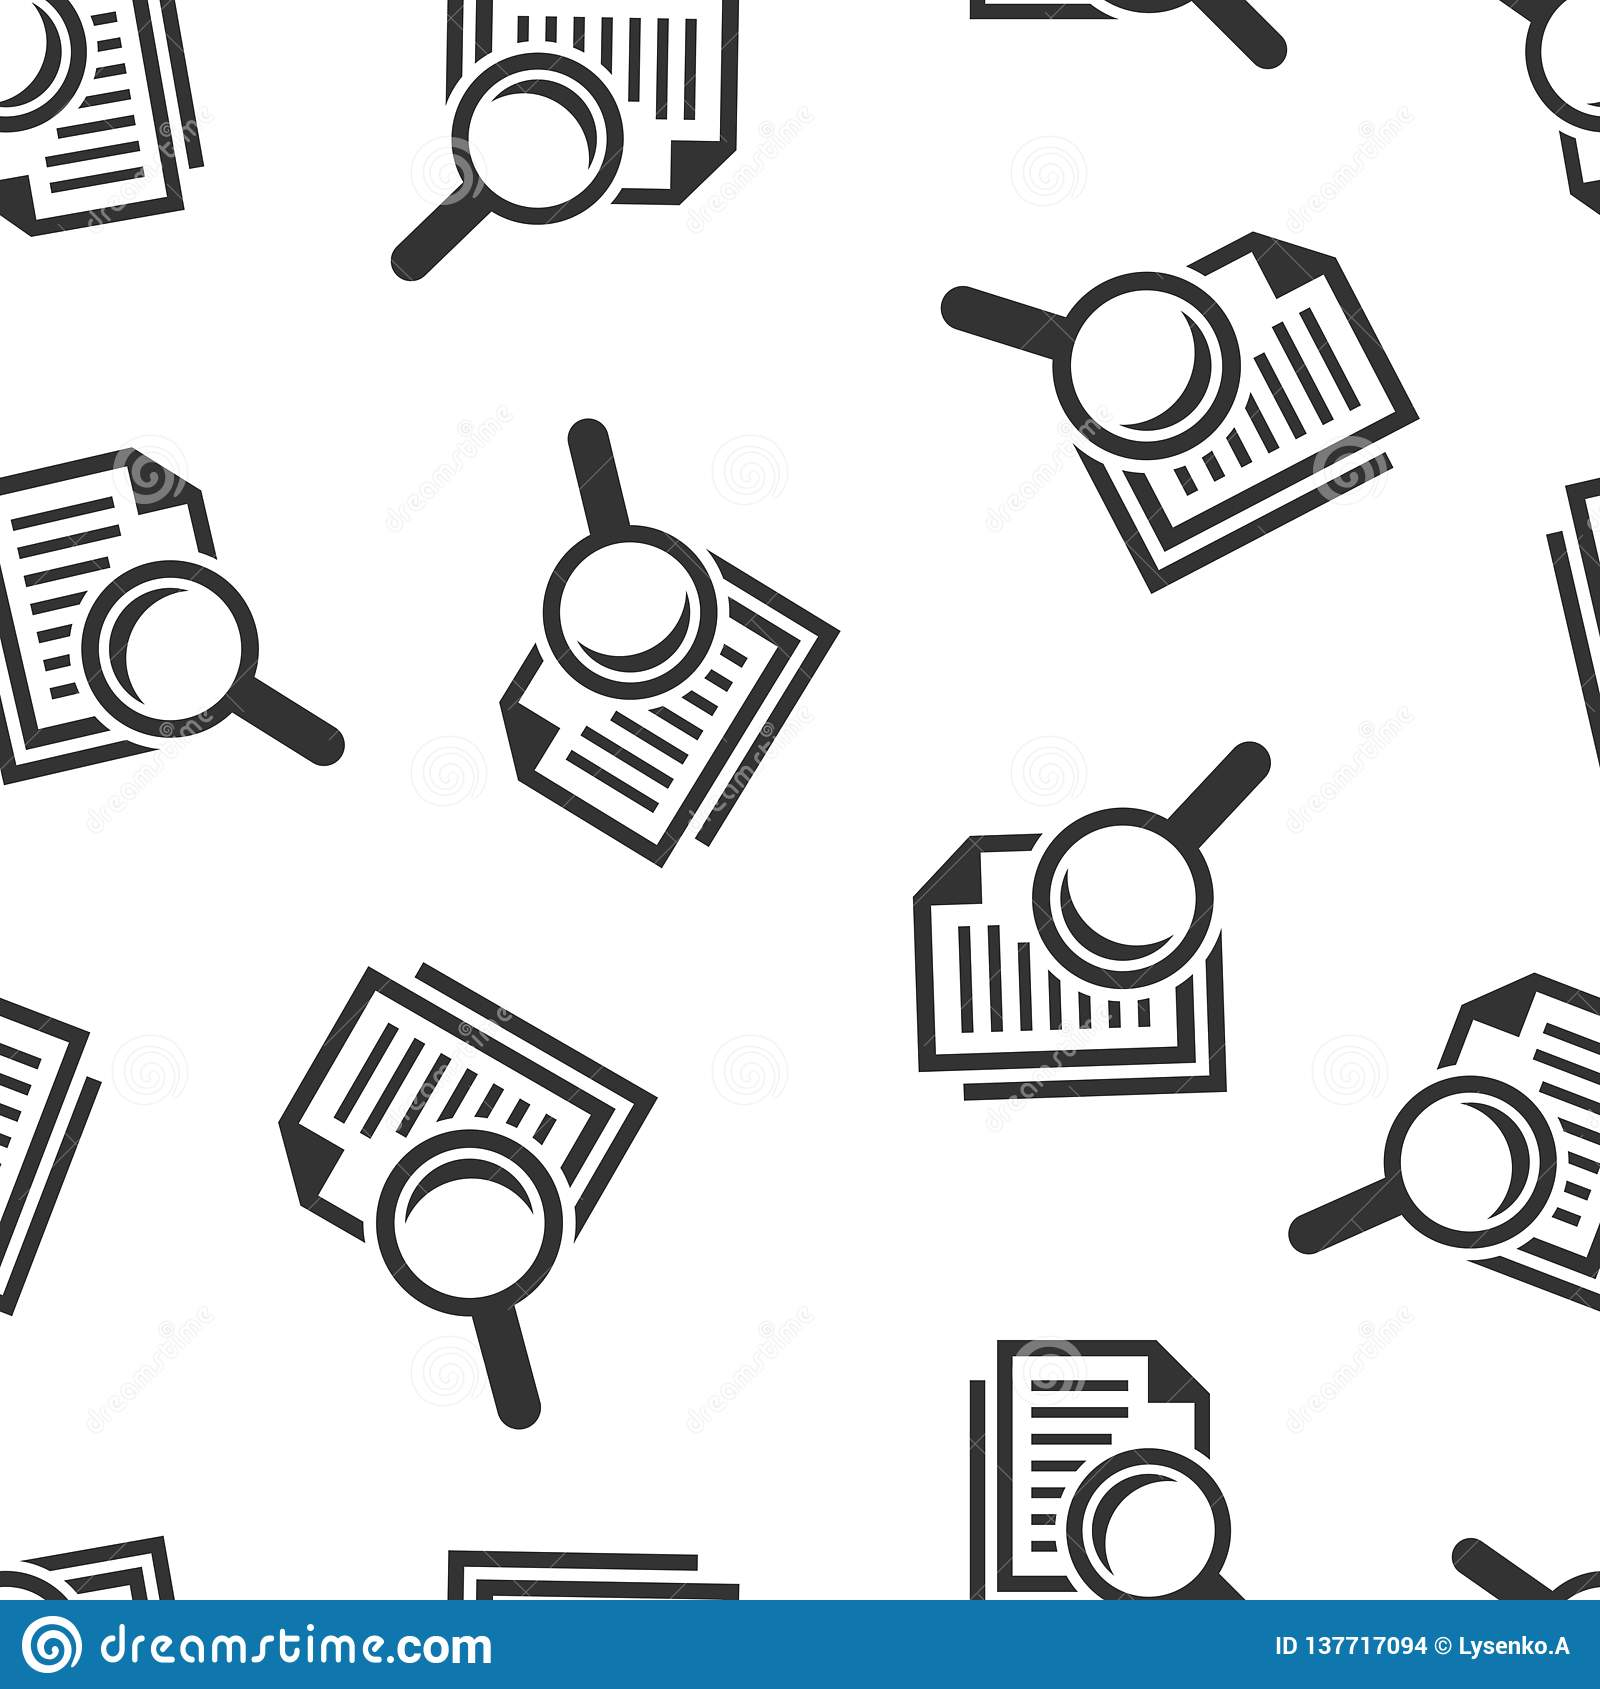 Scrutiny document plan icon seamless pattern background. Review statement vector illustration. Document with magnifier loupe